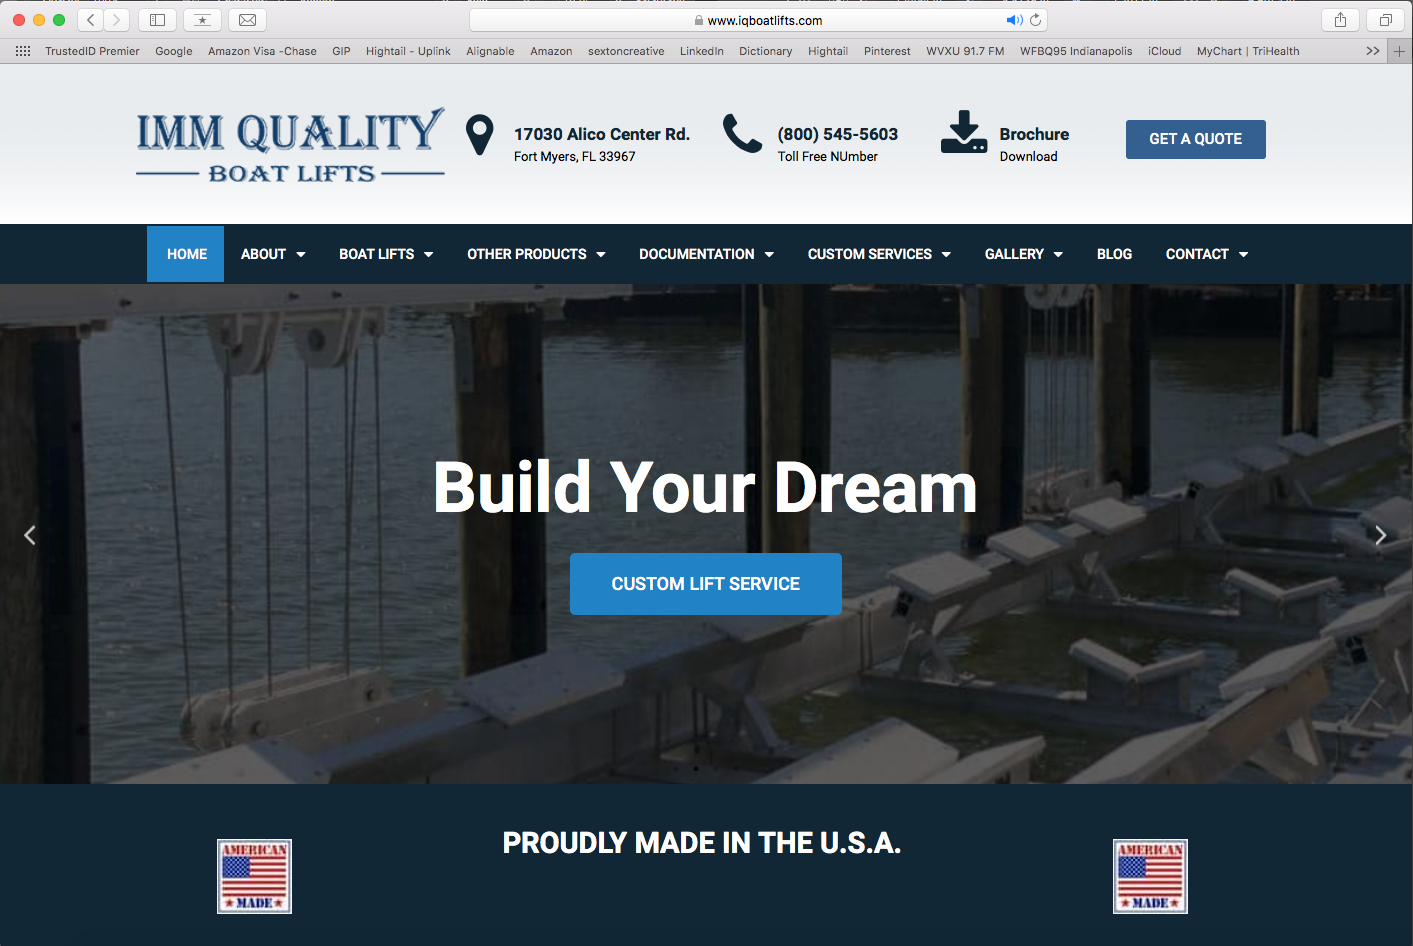 IQ Boat Lifts (new website design)